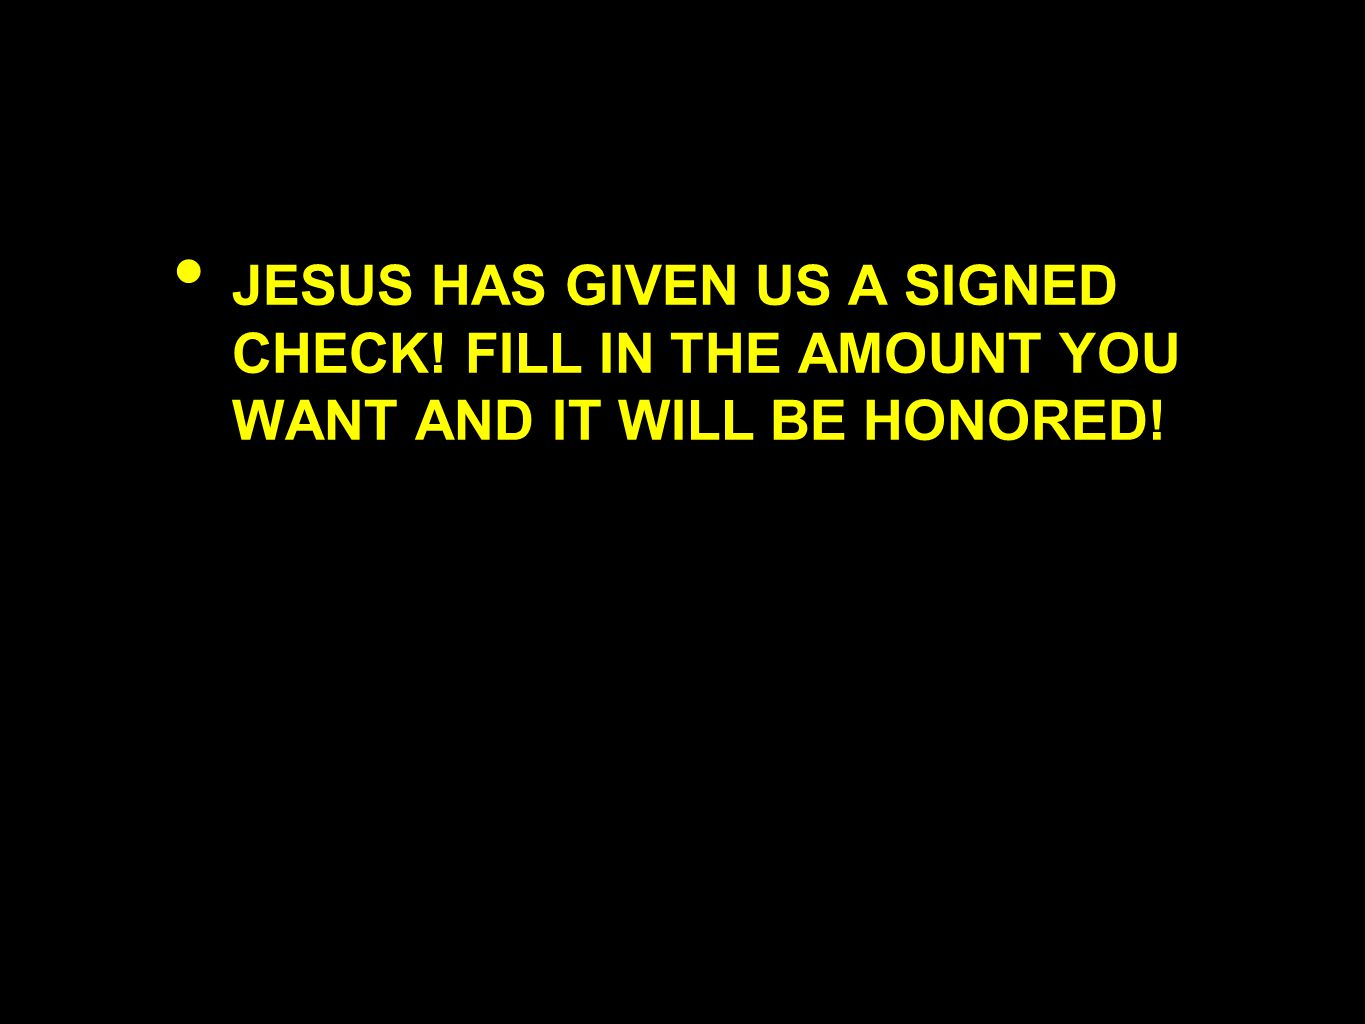 JESUS HAS GIVEN US A SIGNED CHECK